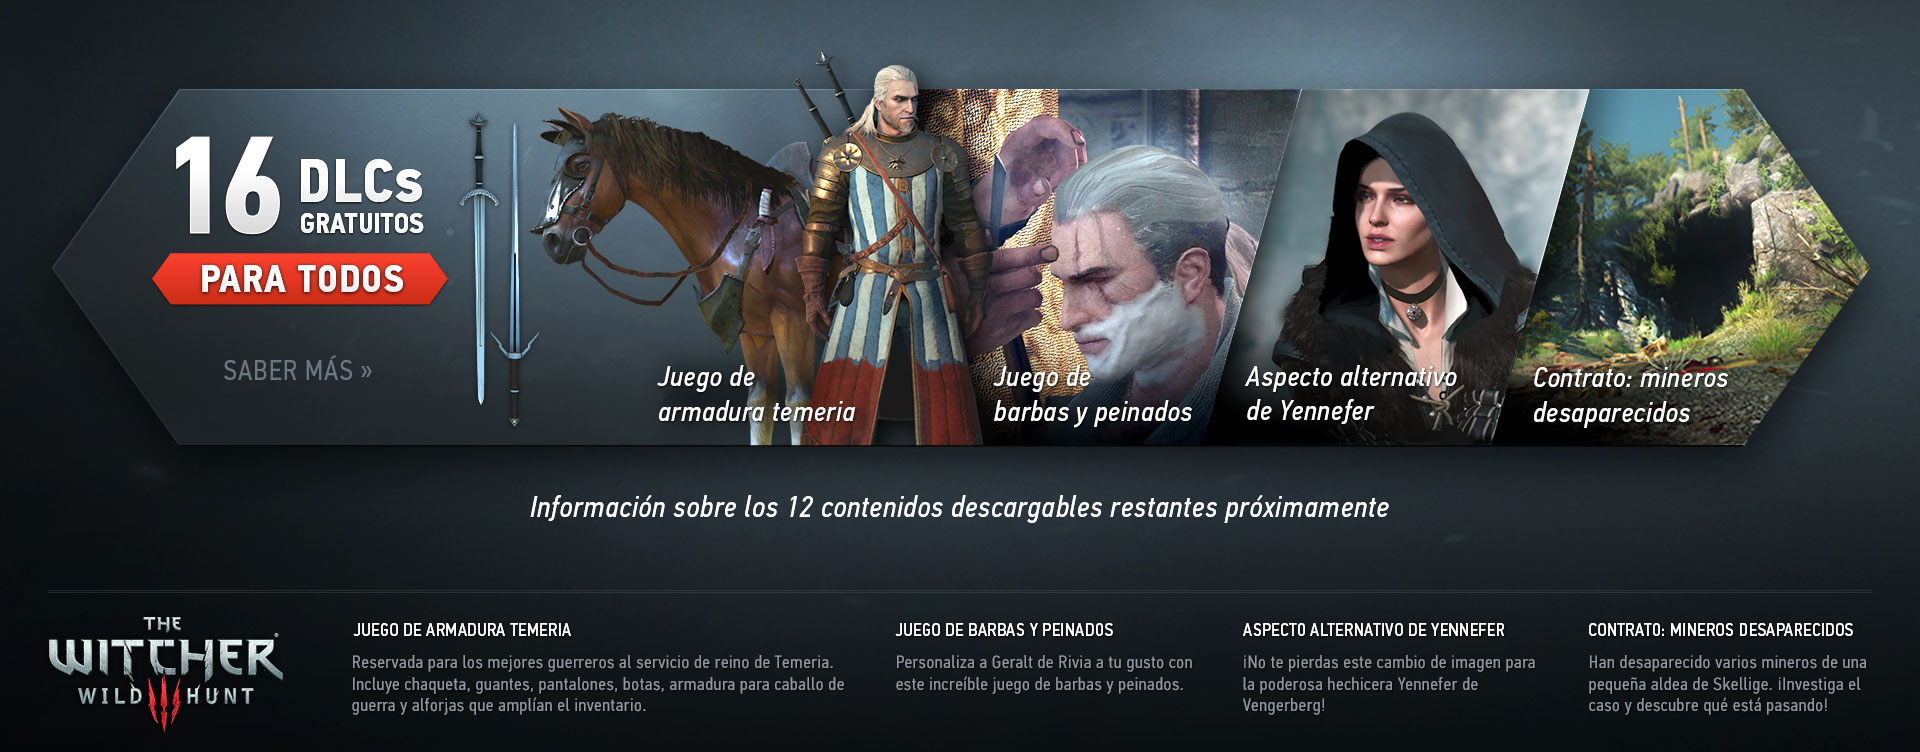 The Witcher 3 regalará 16 DLC